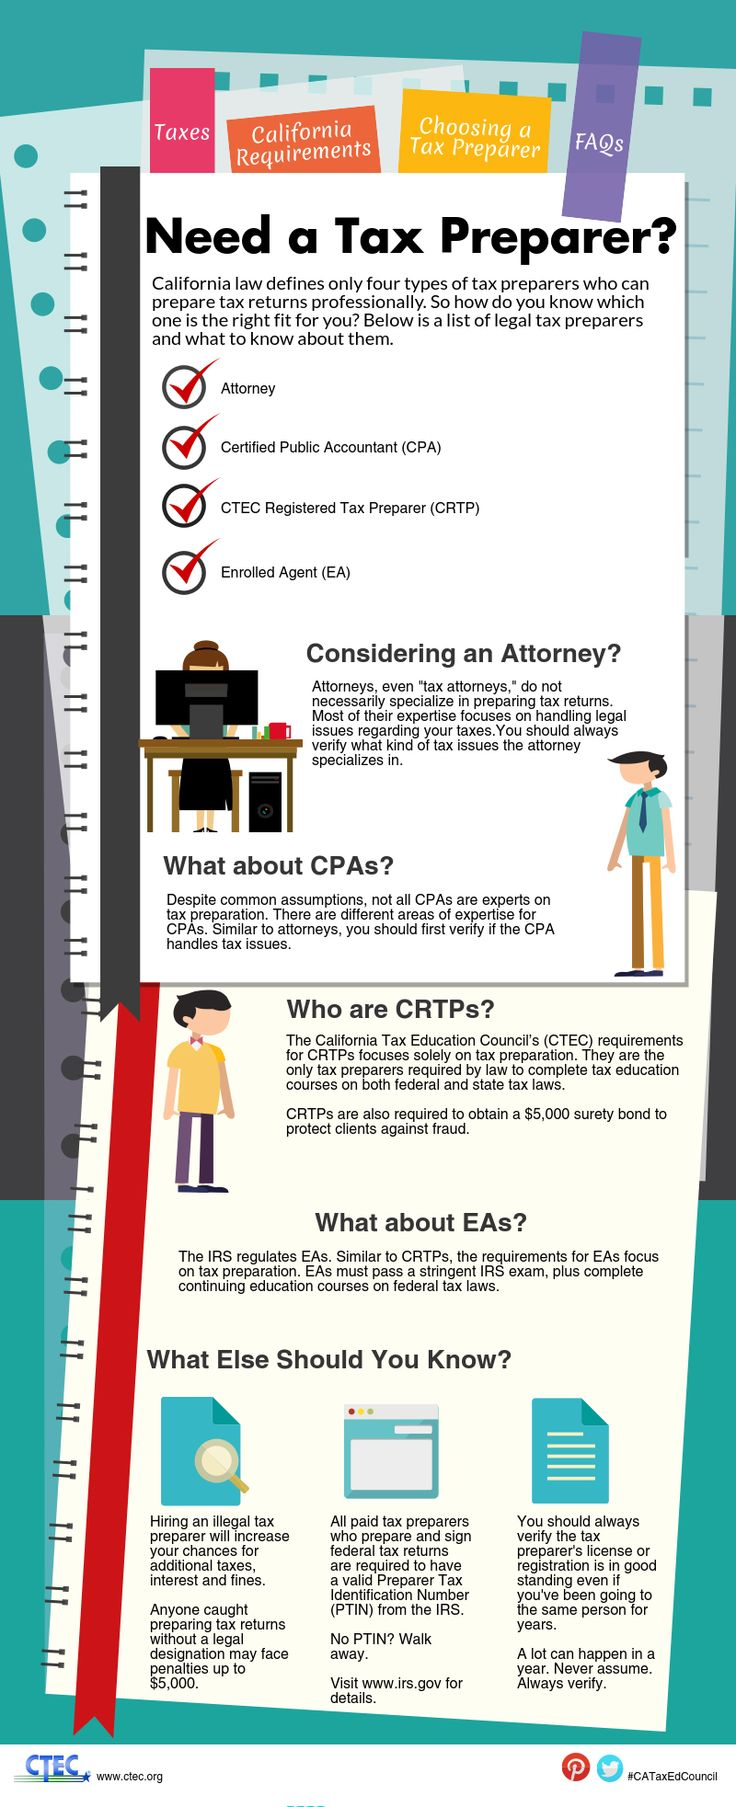 1000+ images about Is Your Tax Preparer Legal? on Pinterest   The ...